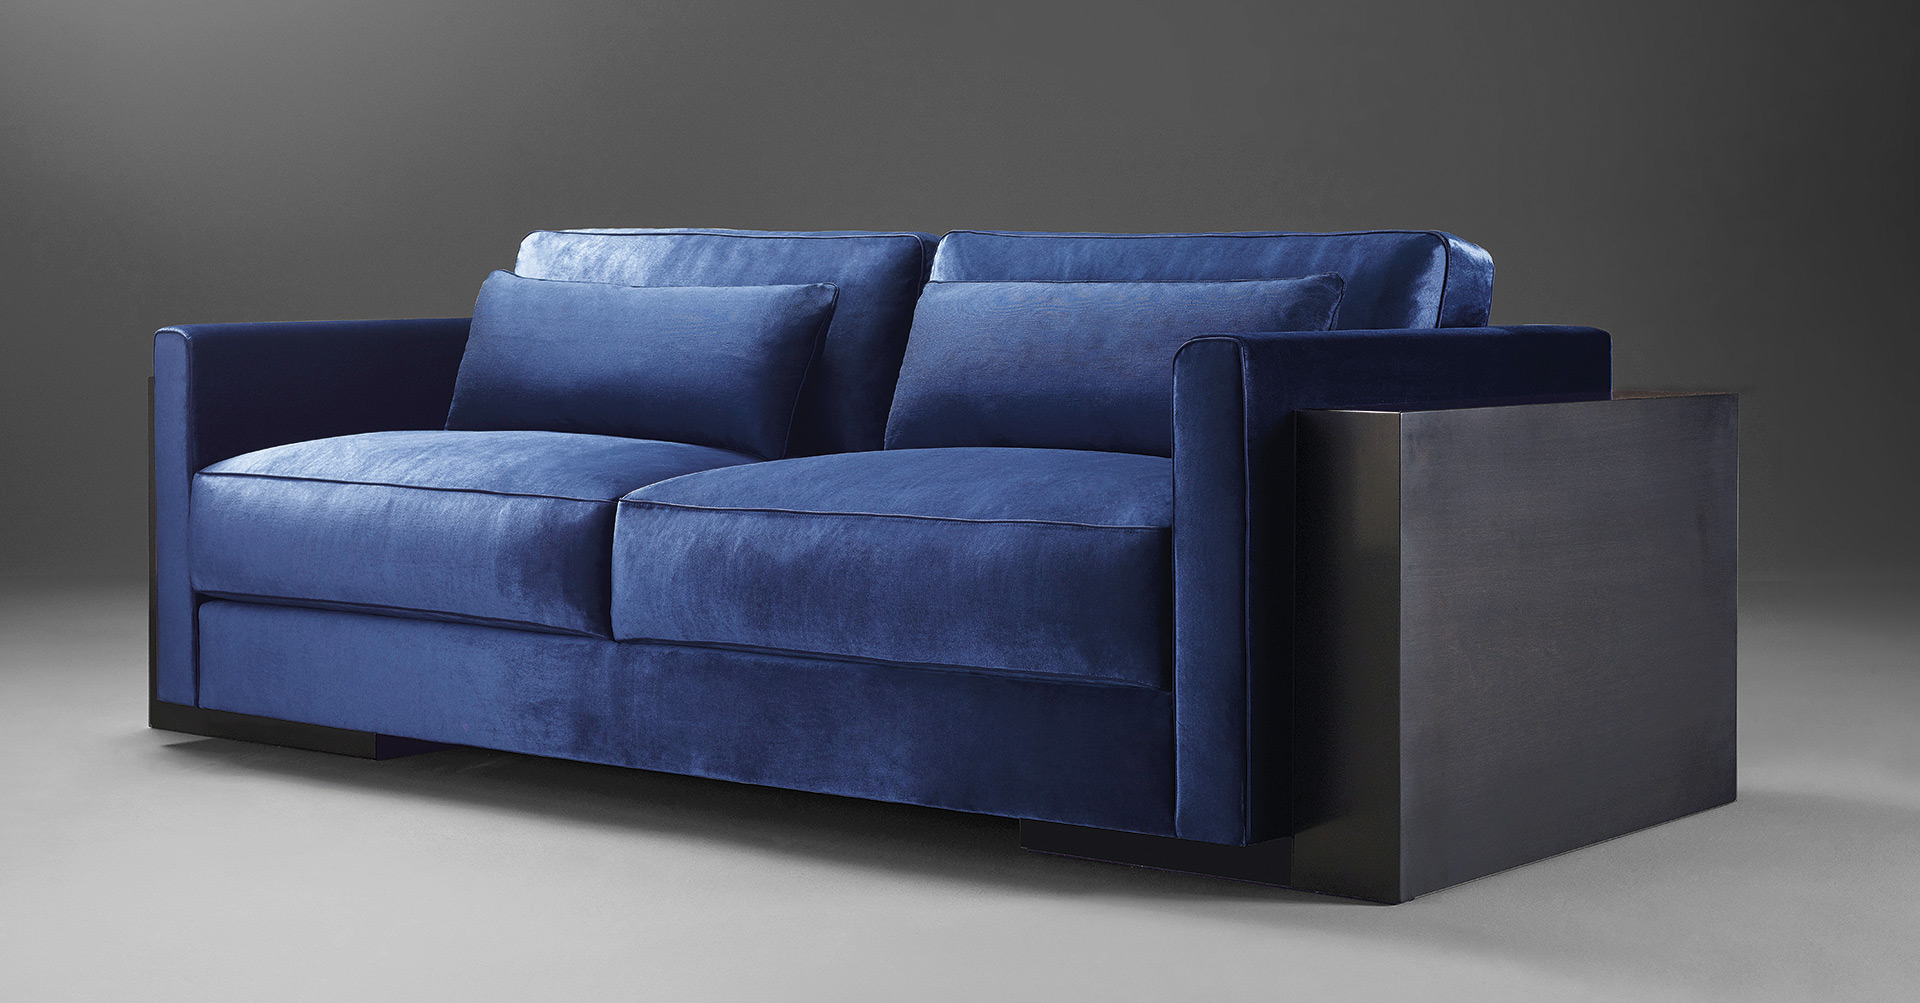 Ipparco is a wooden sofa with seat and back cushions in fabric, from Promemoria's Amaranthine Tales collection | Promemoria